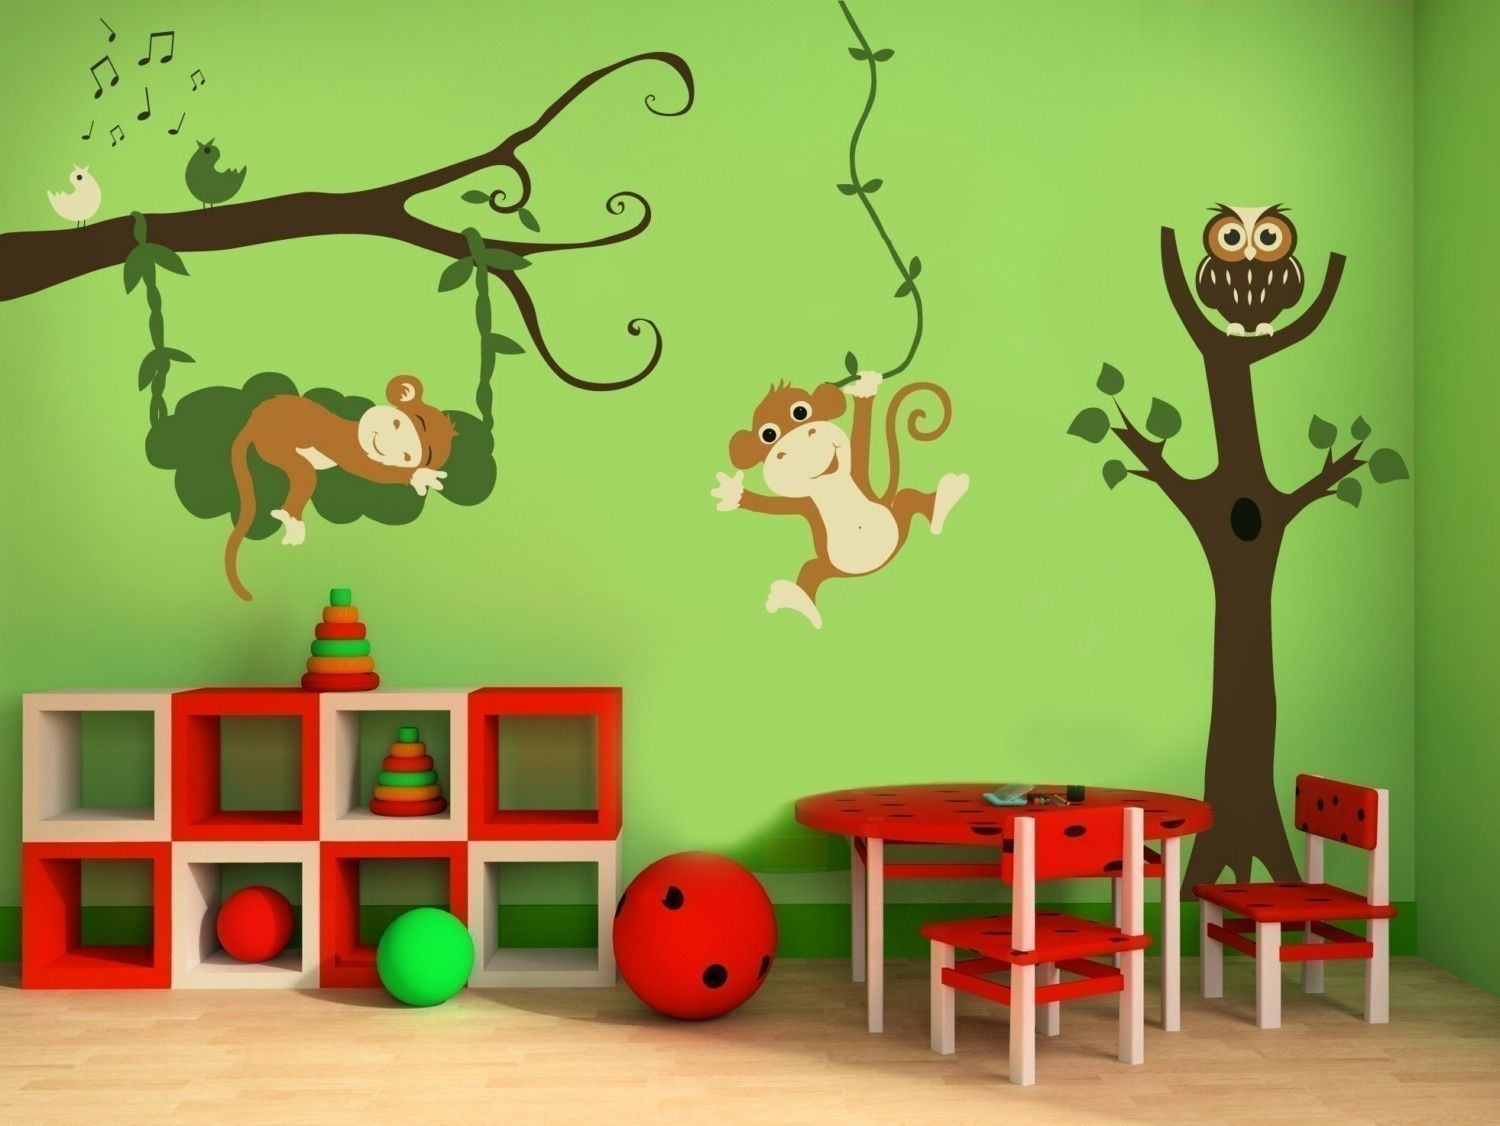 Amazing And Beautiful Classroom Decorations For Nursery Ideas - Wall decals for church nursery